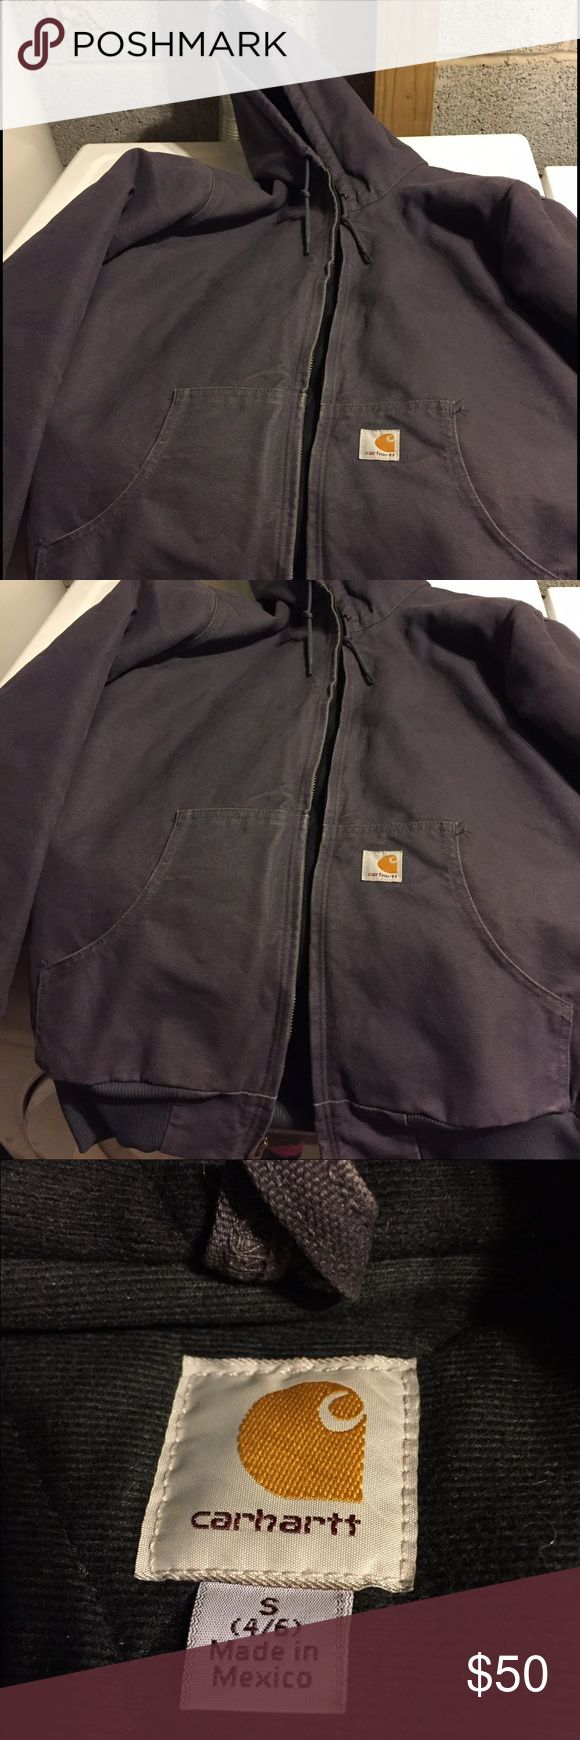 Carhartt winter coat/jacket Coal colored winter jacket. Coat is like a bluish/grey. I just don't wear it anymore because I also have a purple one. Worn, but like new! Carhartt Jackets & Coats